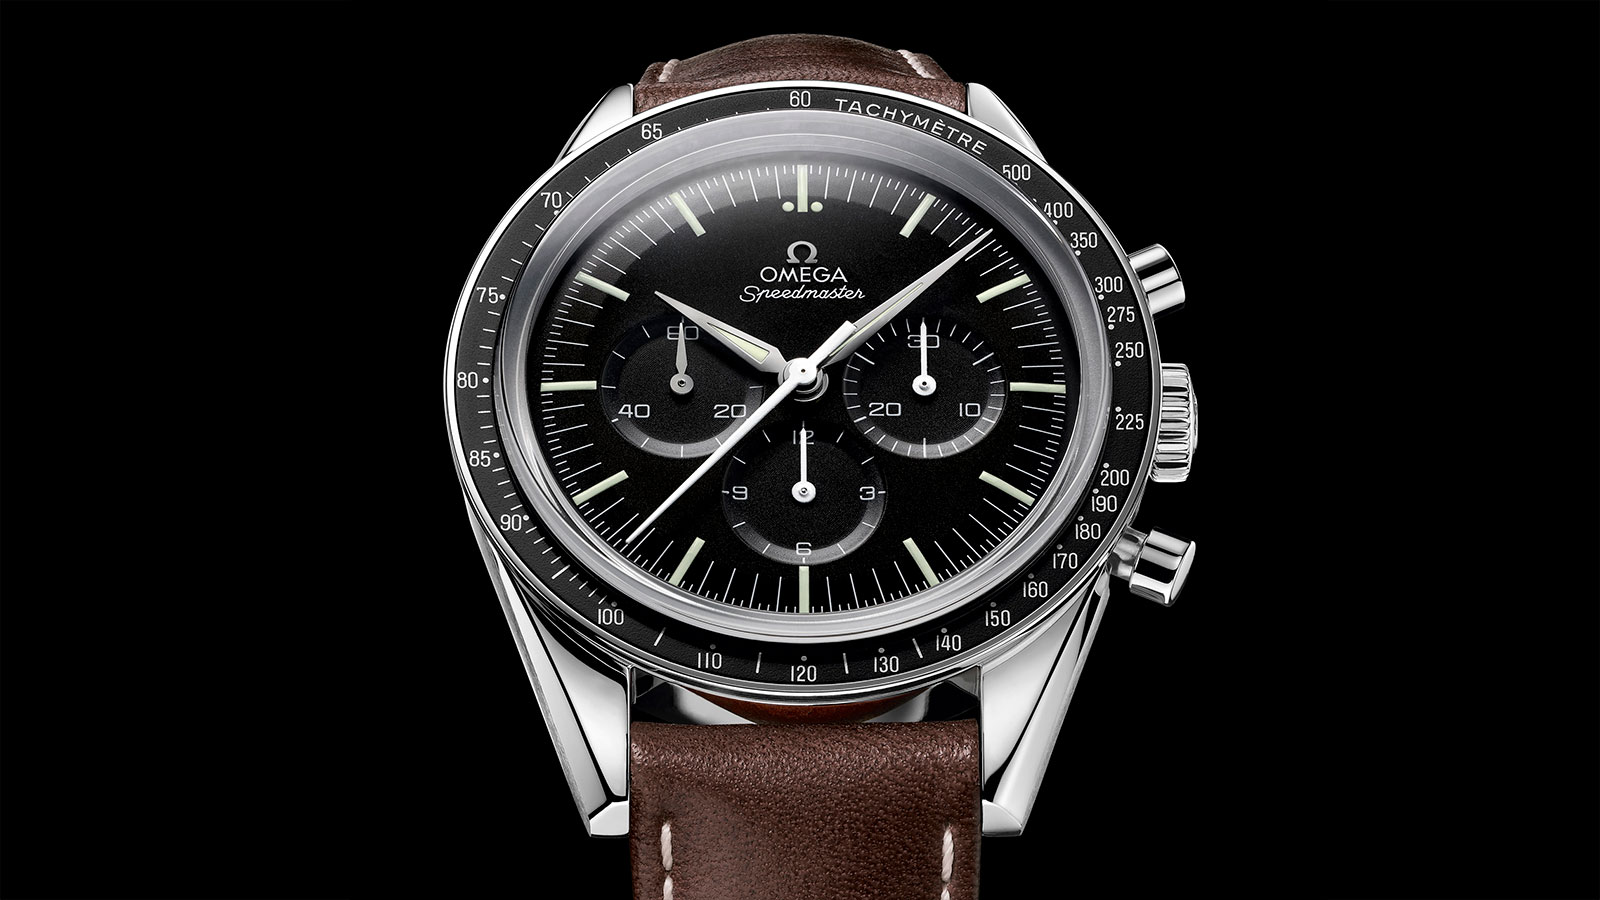 Speedmaster ムーンウォッチ Moonwatch Chronograph 39.7 mm ウォッチ - 311.32.40.30.01.001